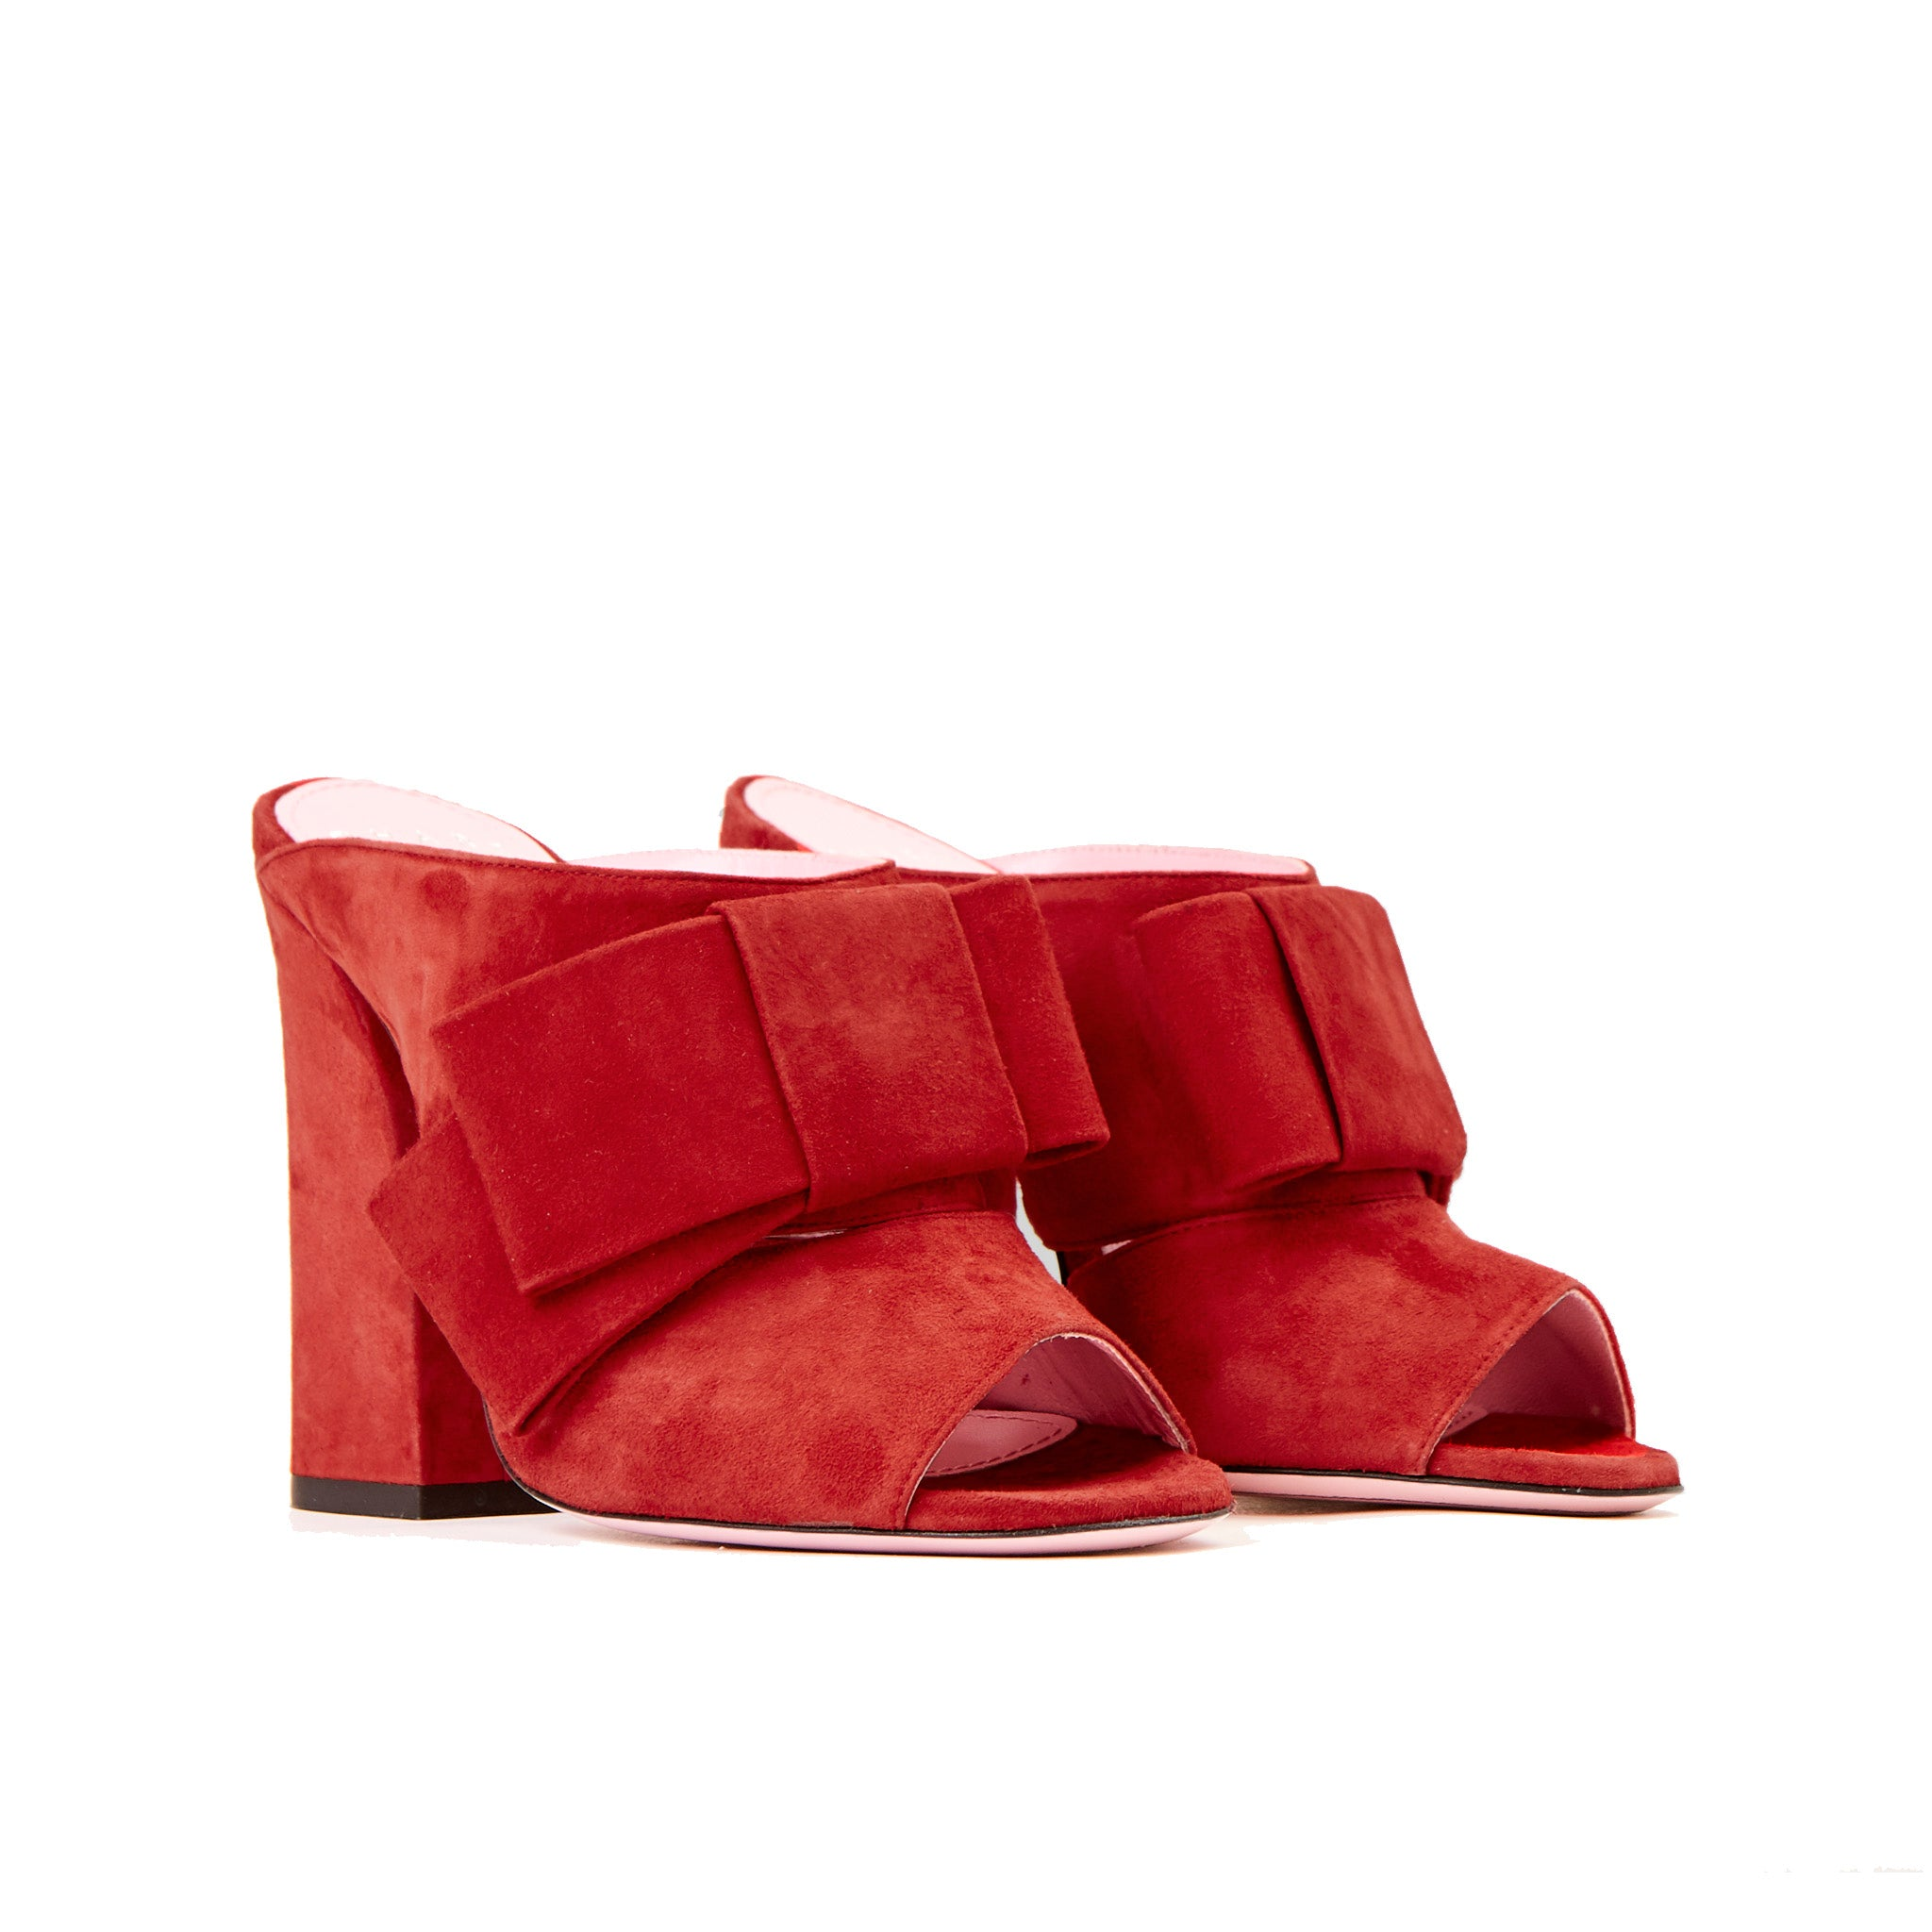 Phare High heel block heel mule with bow in rosso suede 3/4 view